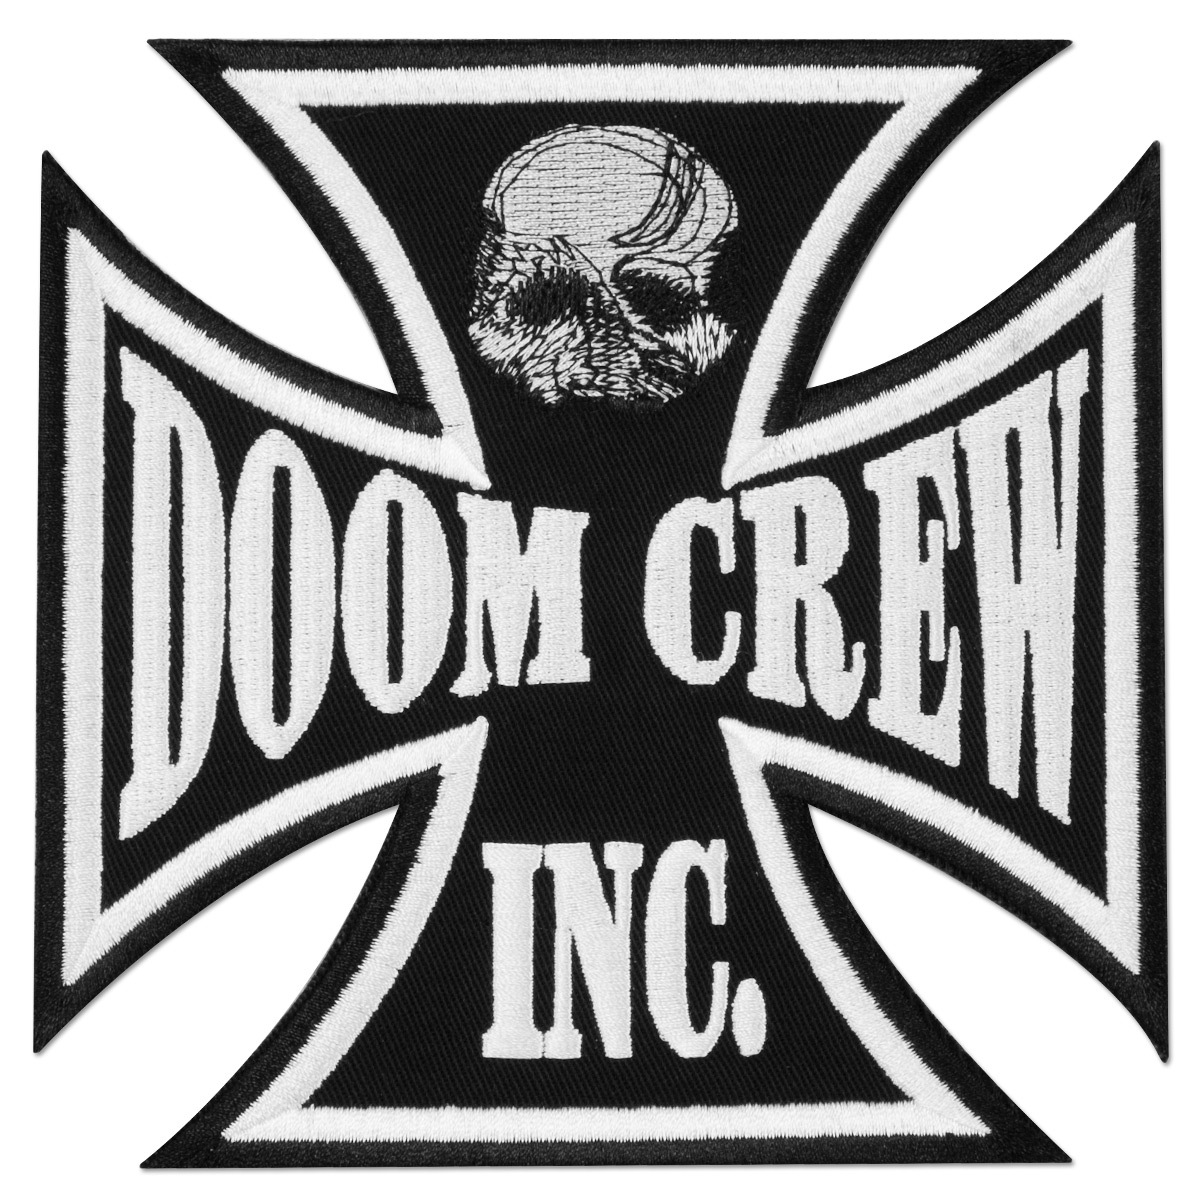 Black Label Society Doom Crew Iron Cross Patch